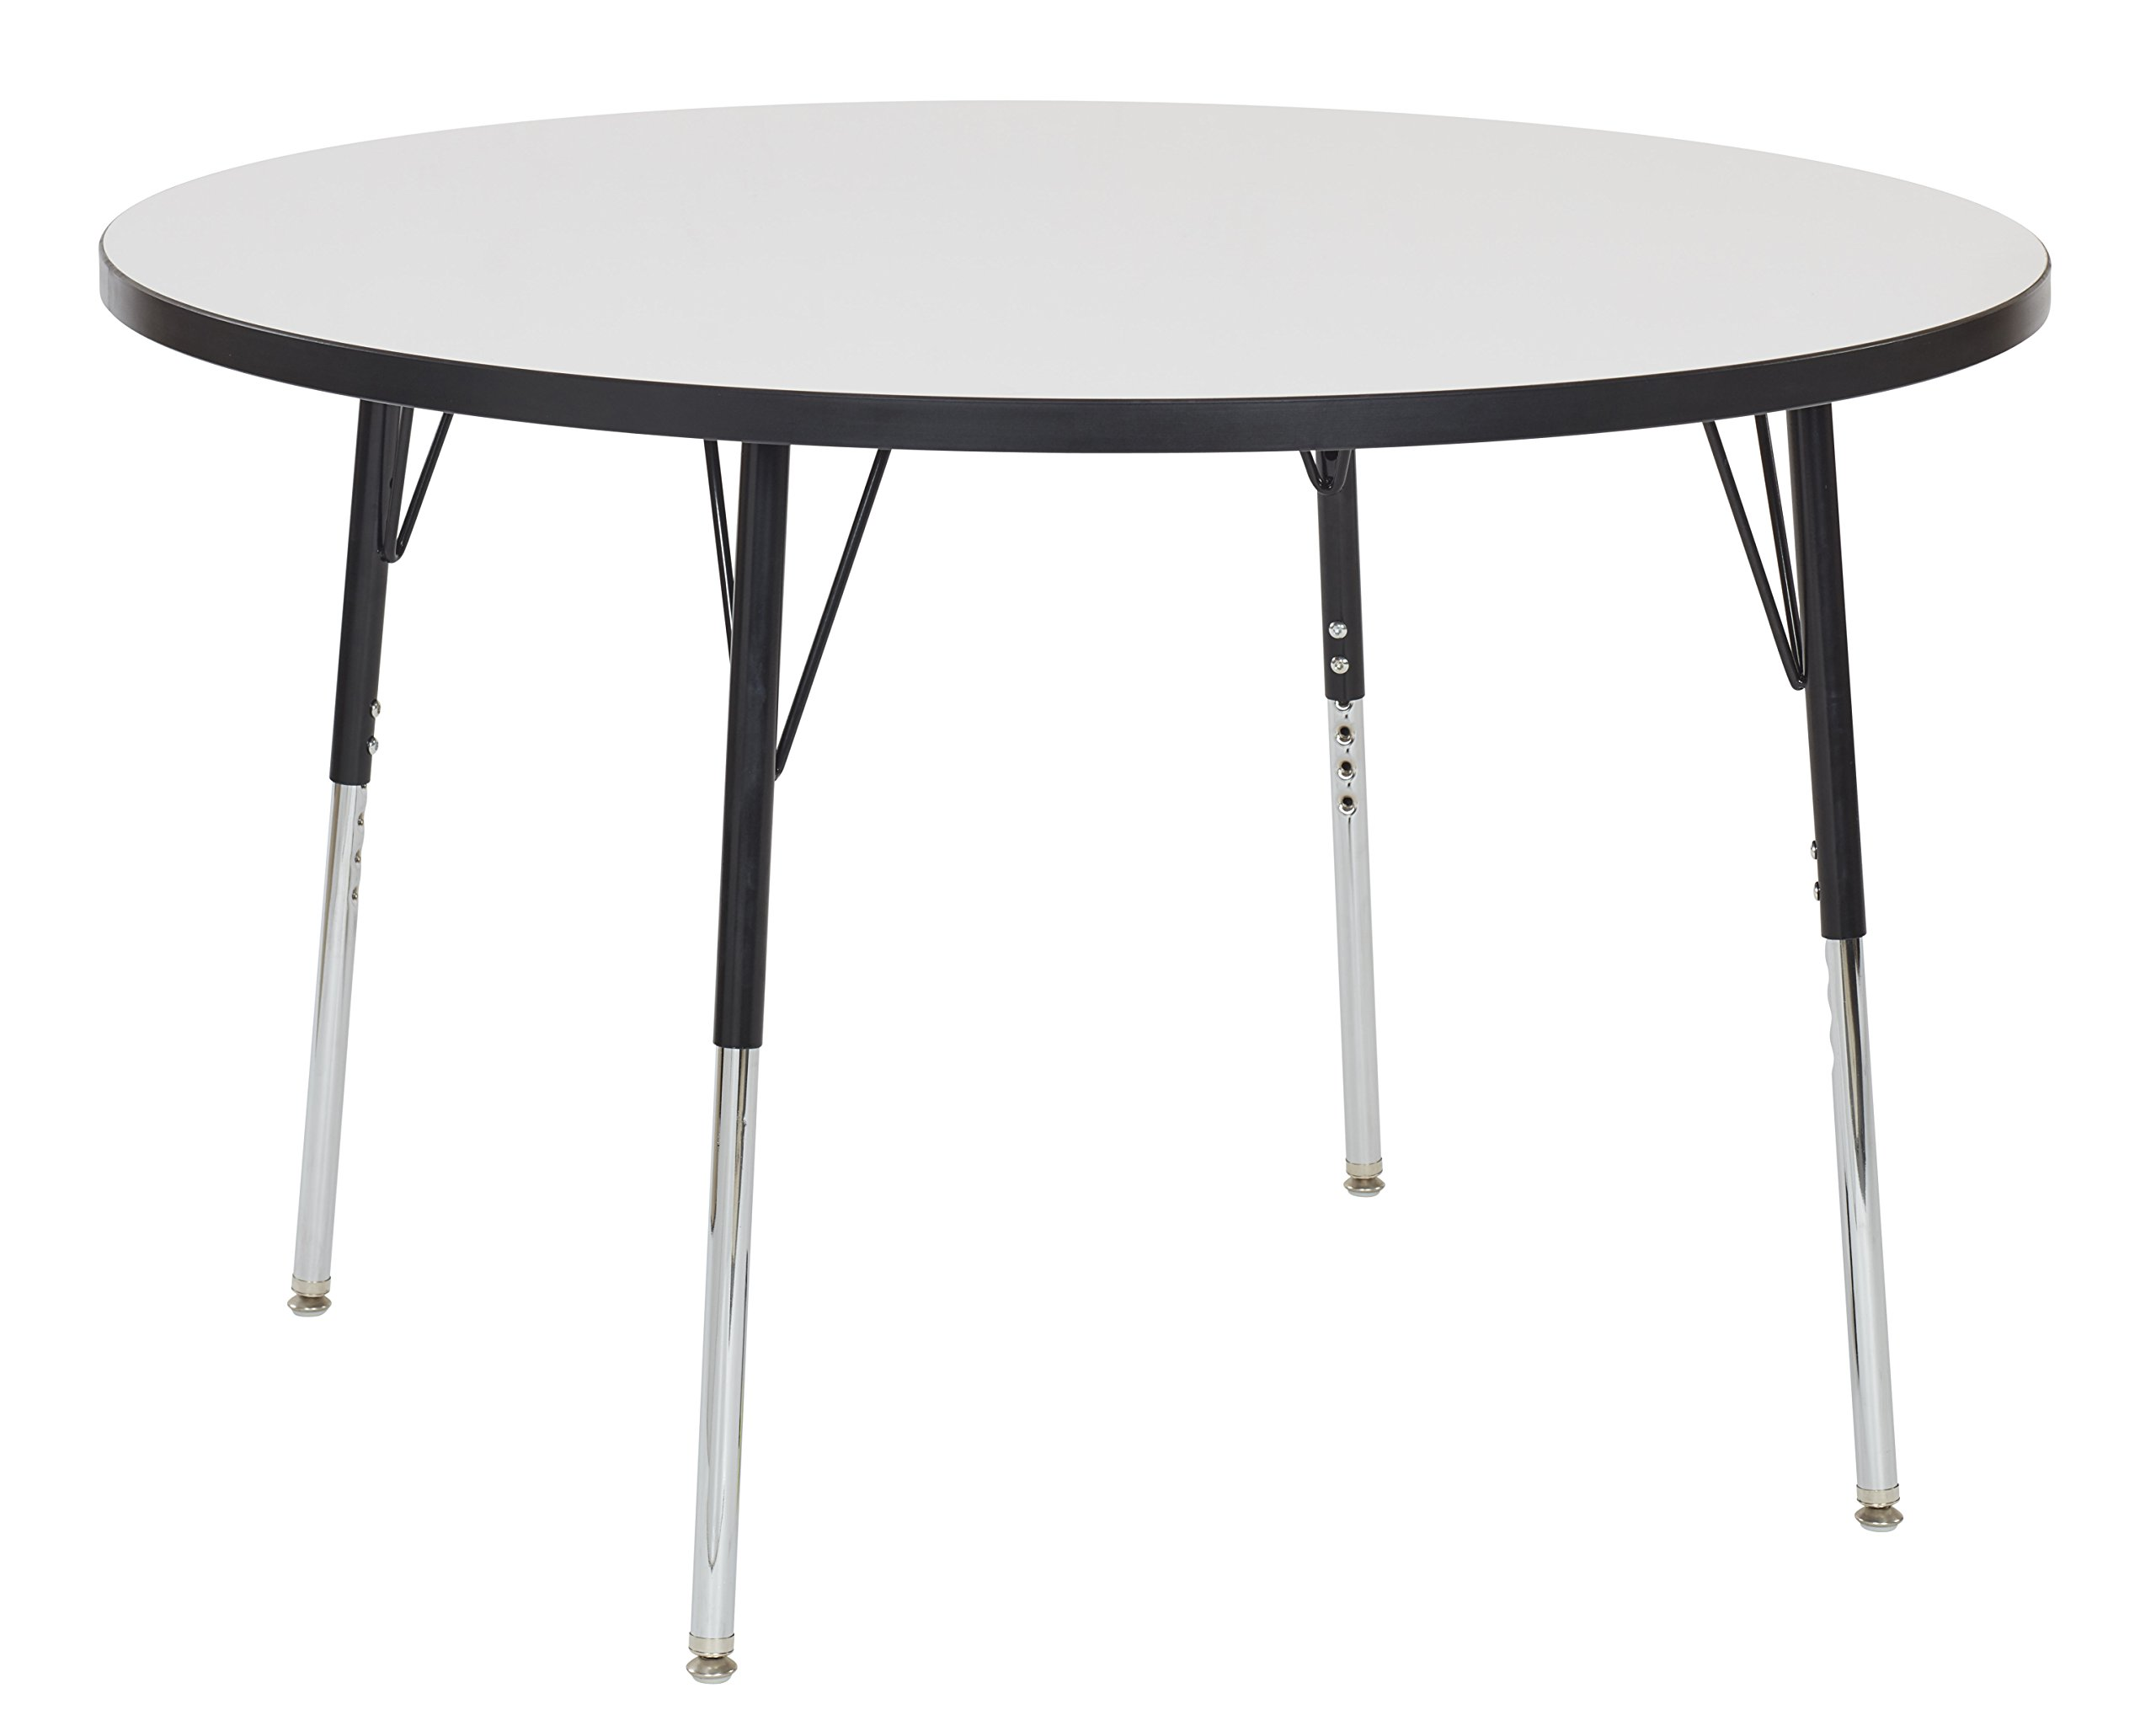 ECR4Kids Dry Erase 48'' Round Whiteboard School Activity Table, Standard Legs w/ Swivel Glides, Adjustable Height 19-30 inch (Black)